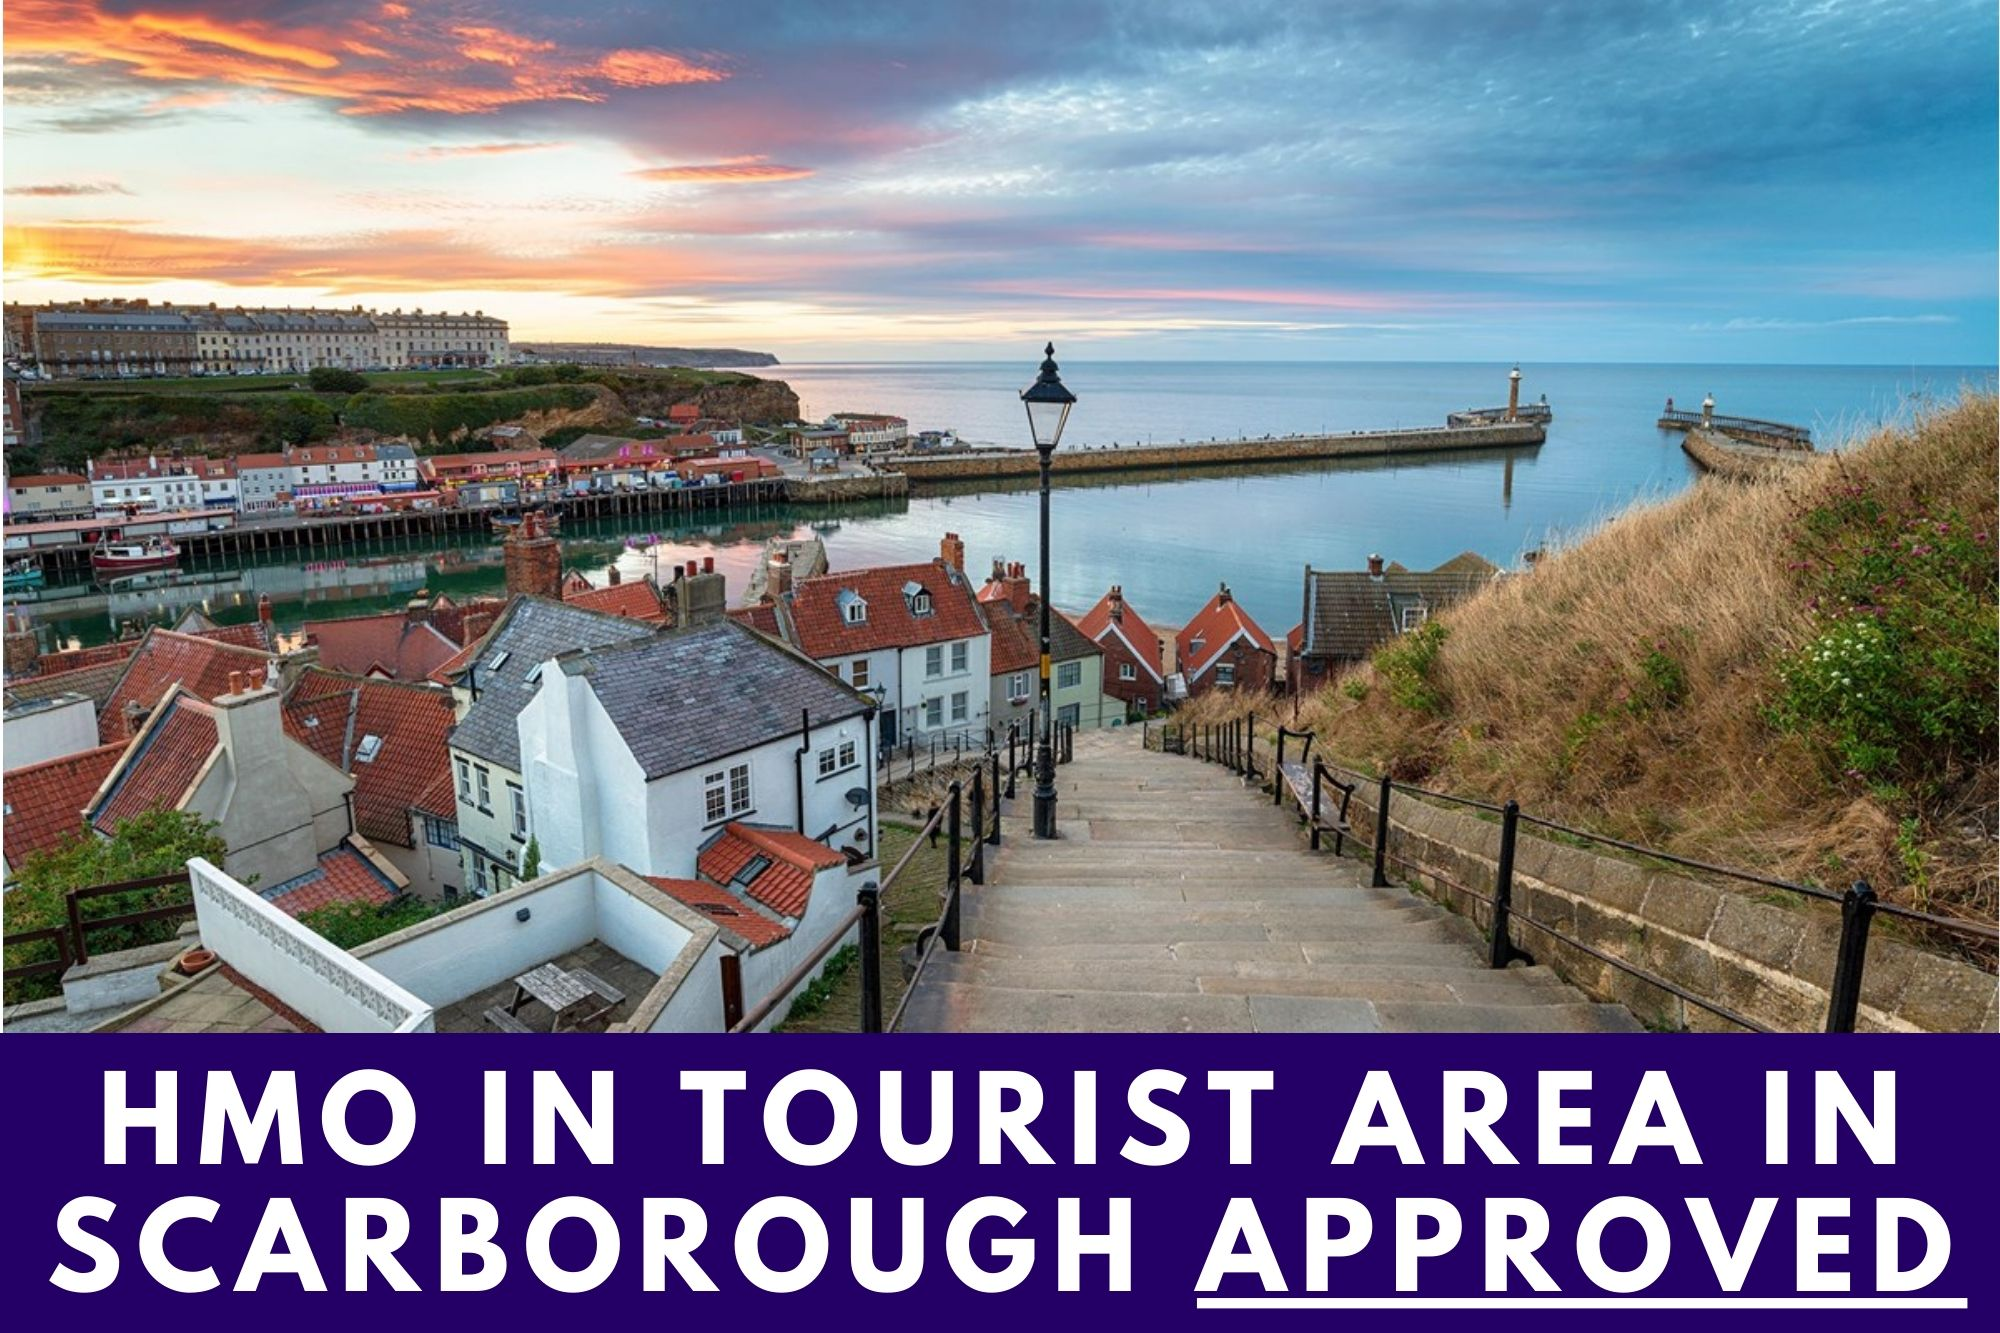 HMO In Tourist Area in Scarborough Approved